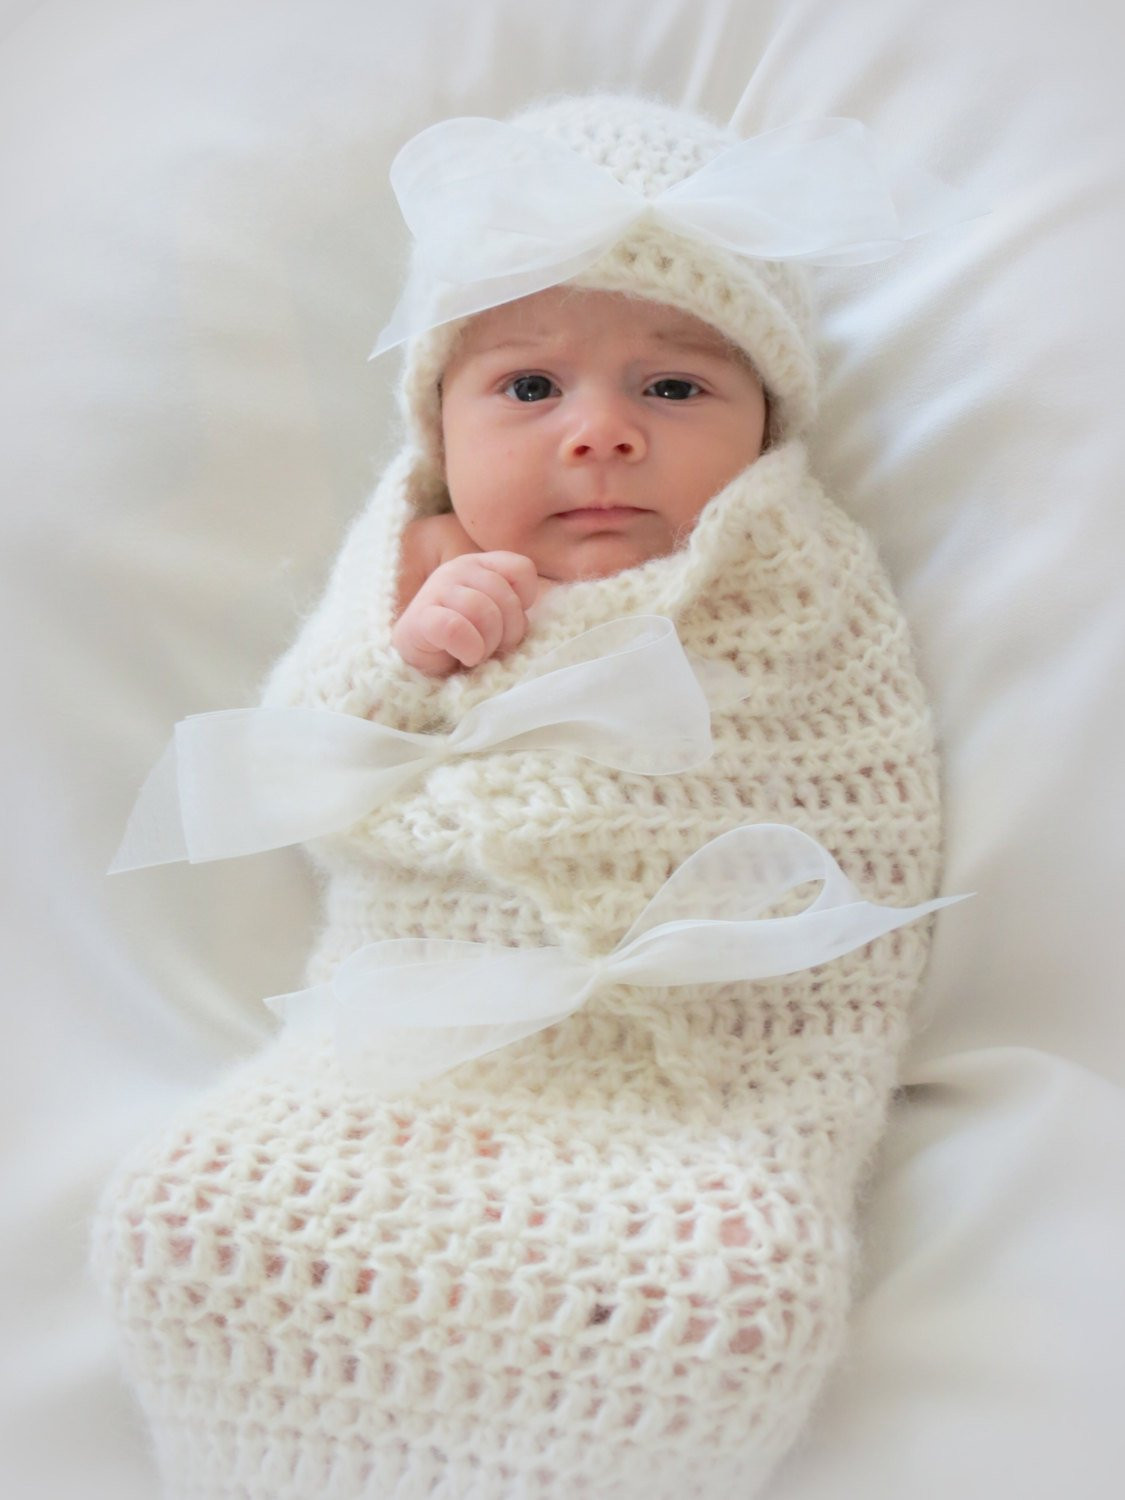 Baby Cocoon Crochet Pattern Inspirational Crochet Baby Cocoon and Hat Pattern Newborn Prop Of Marvelous 49 Images Baby Cocoon Crochet Pattern